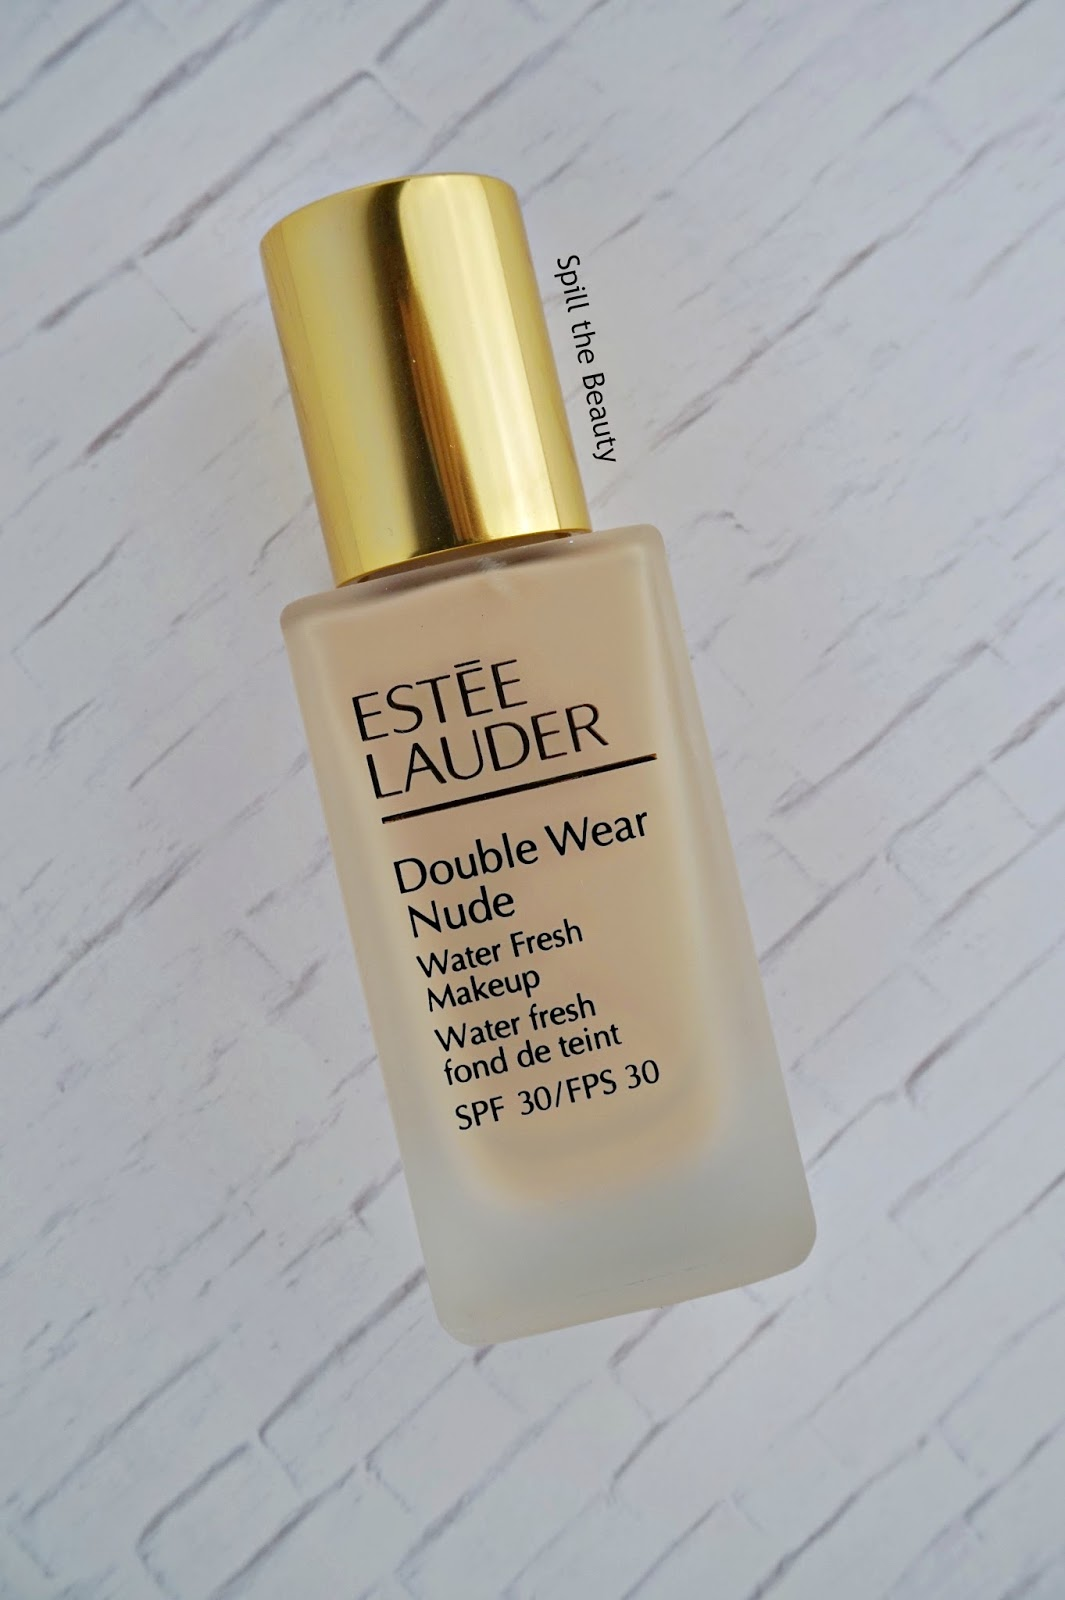 Estée Lauder 'Double Wear Nude Water Fresh Makeup' Foundation – Review, Swatches, and Before & After